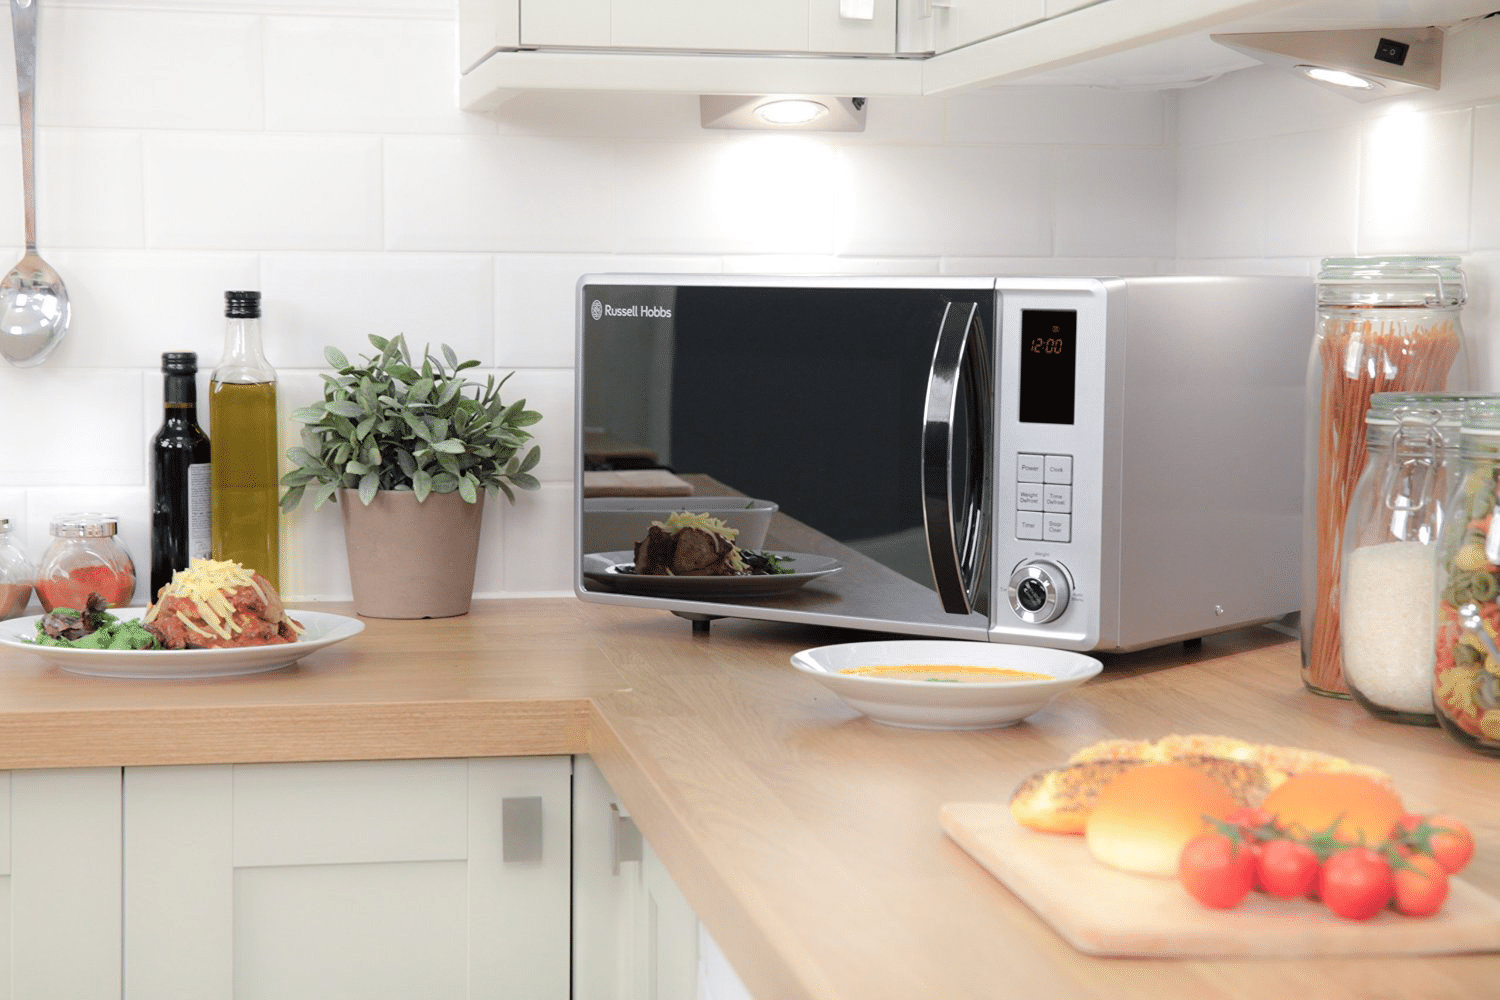 What is the difference between a grill and a convection microwave